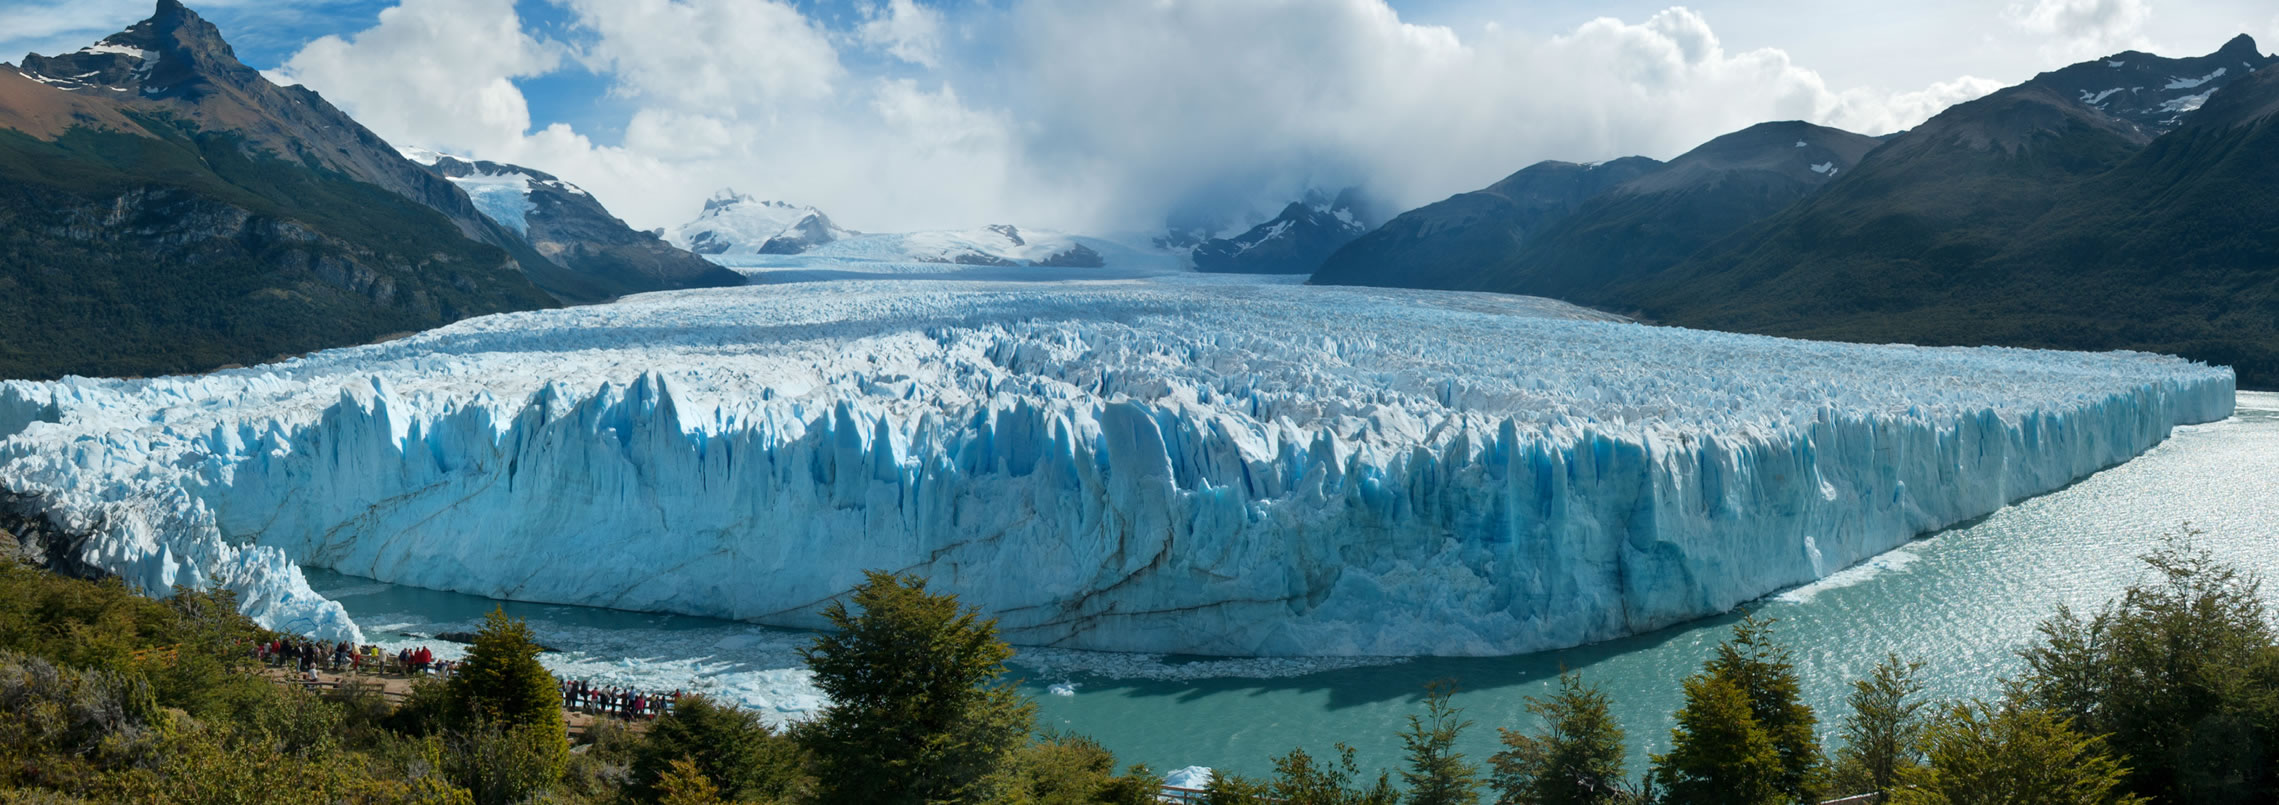 A Photo of Perito Moreno glacier Calefate Argentina